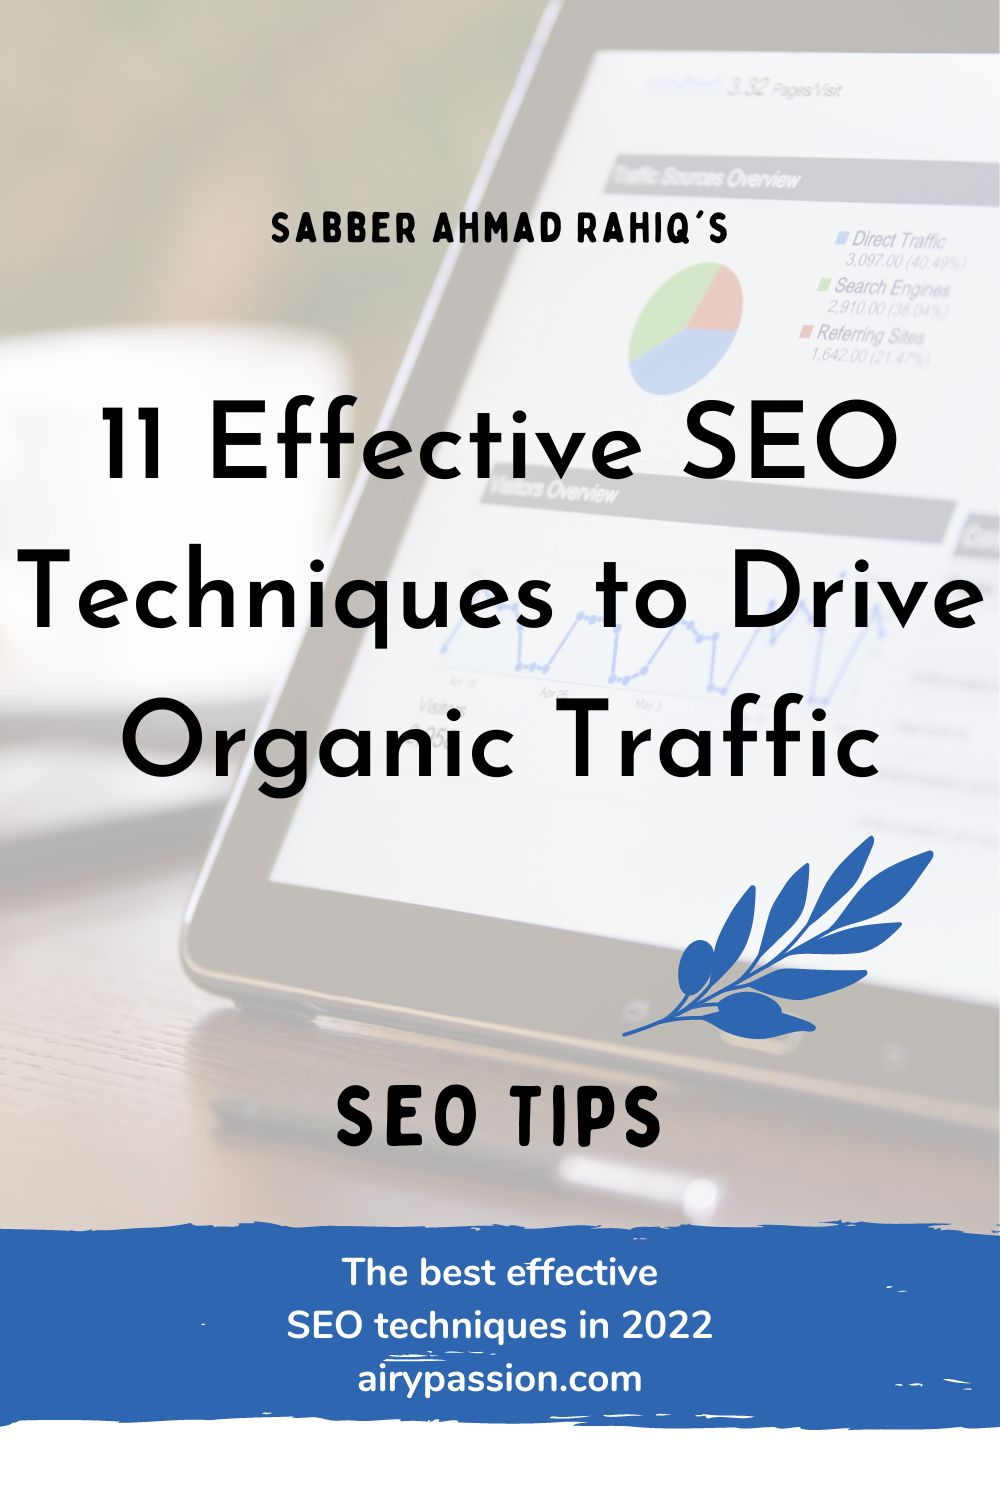 Top SEO techniques in 2021